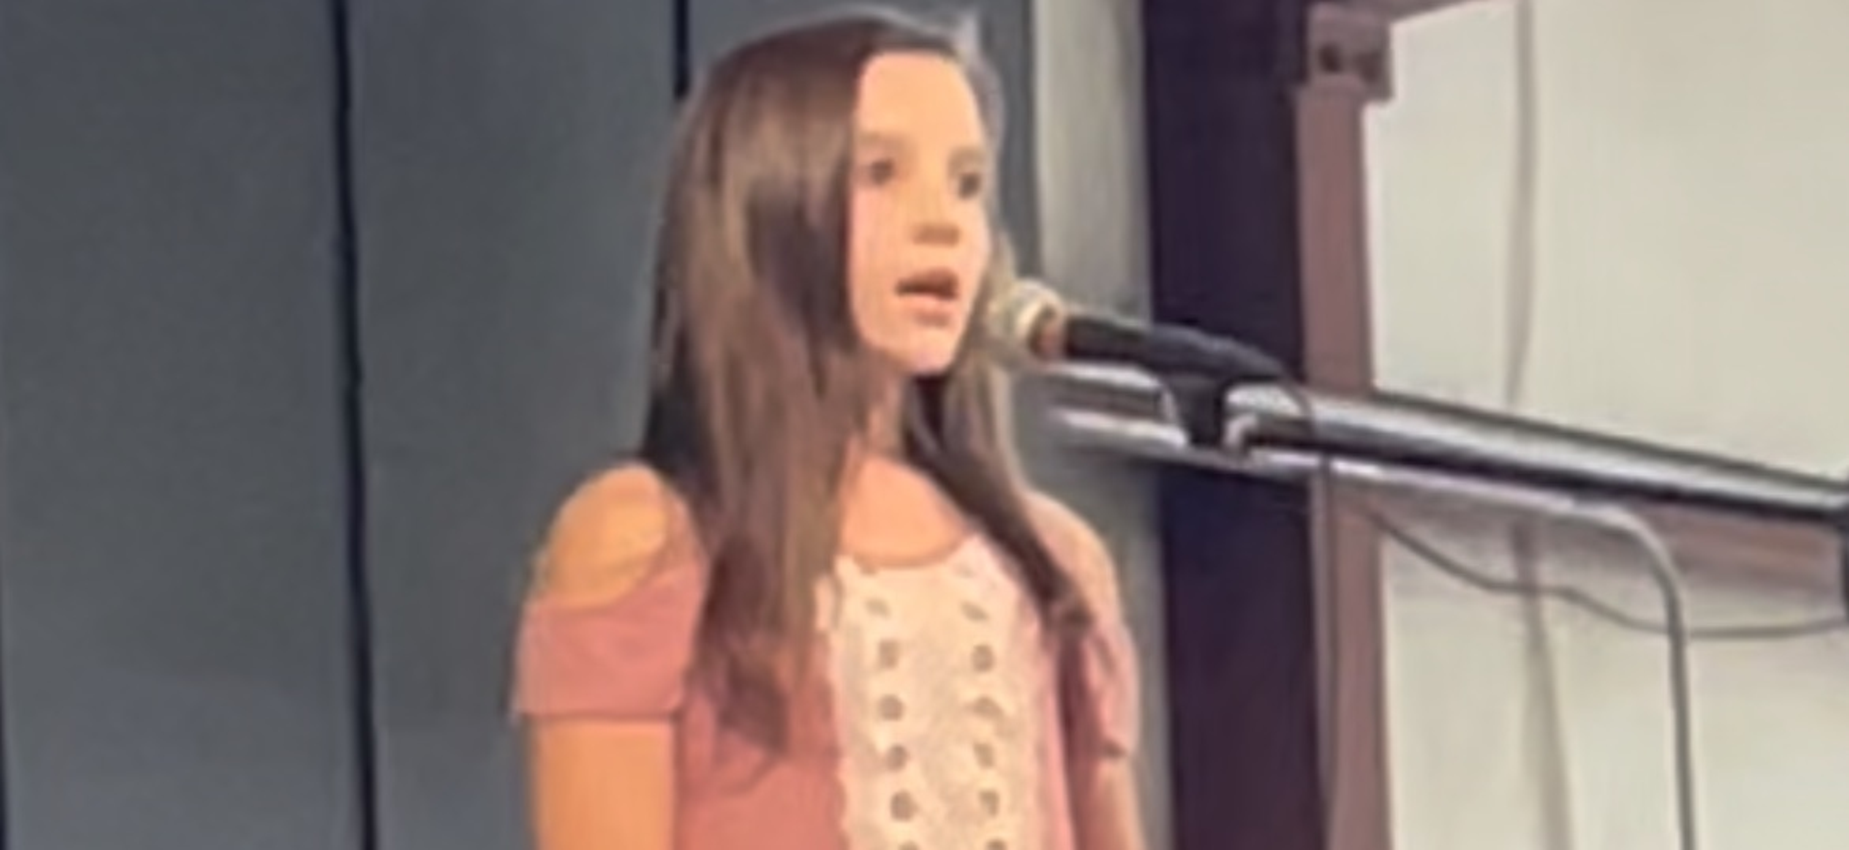 A student sings at a microphone.